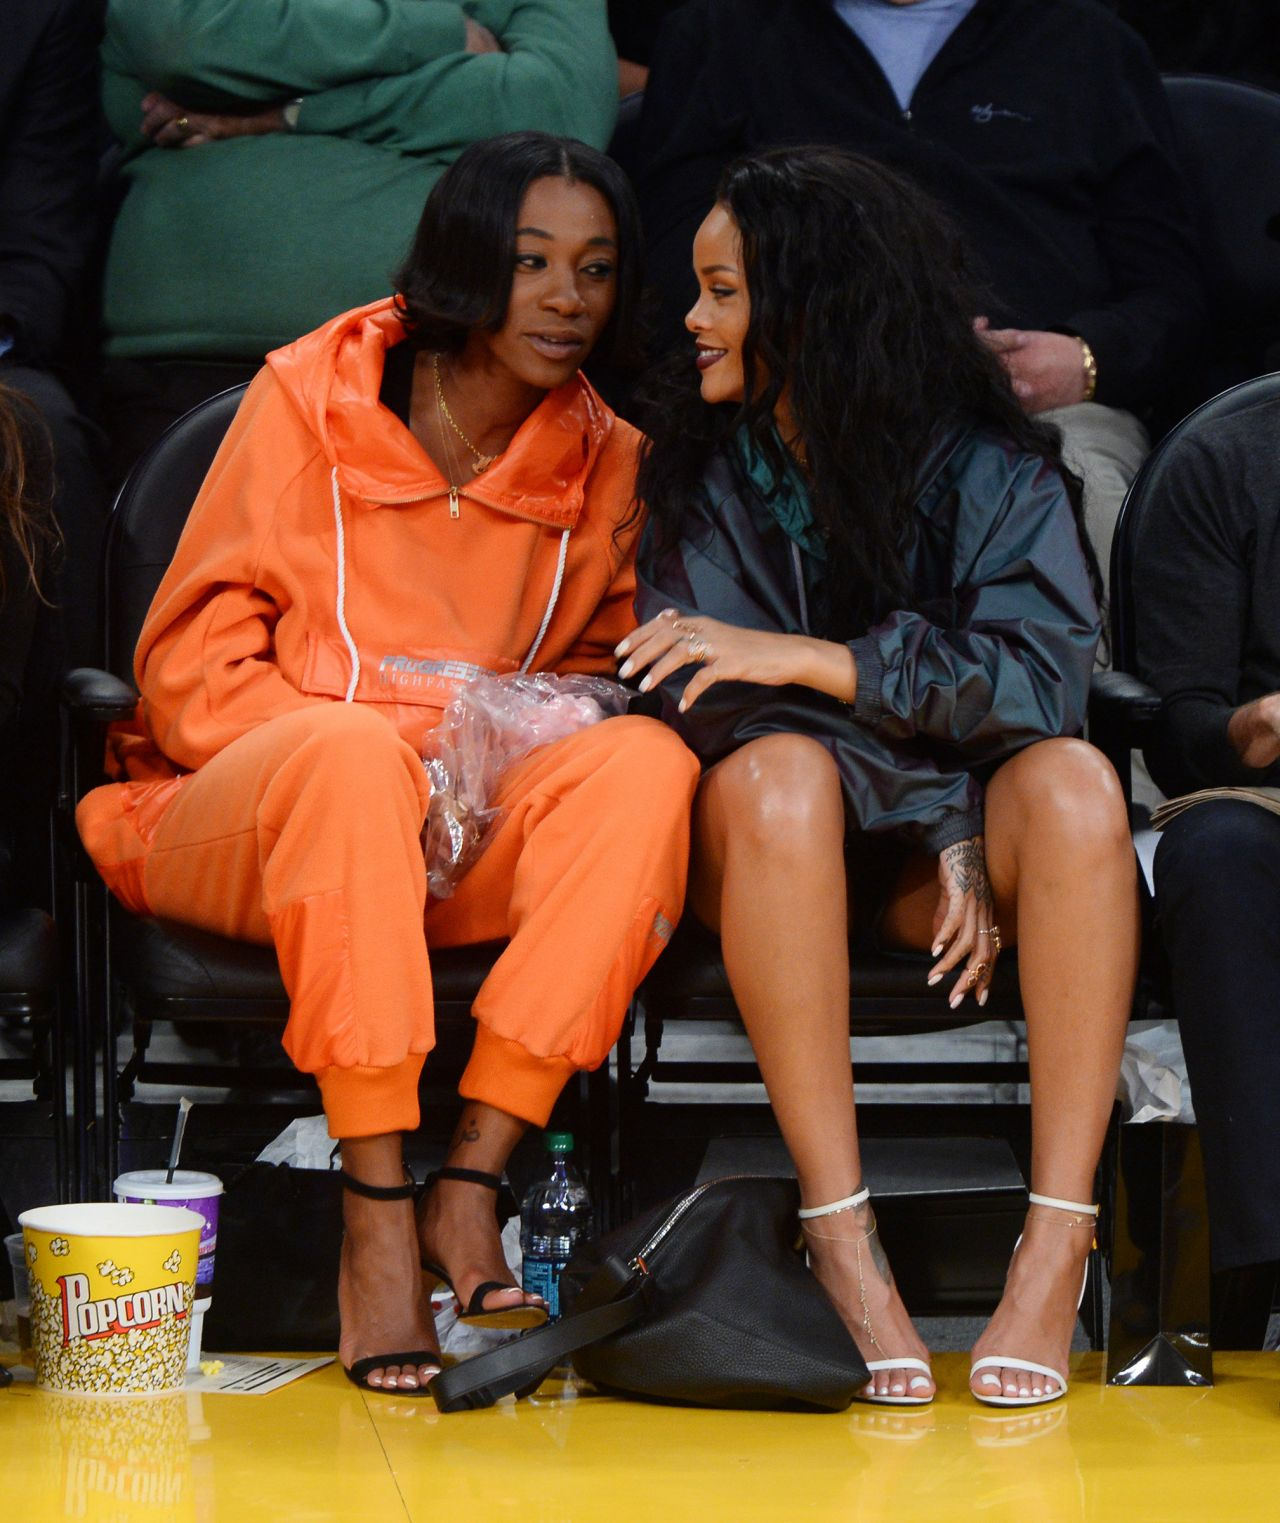 Rihanna LA - 2015 Celebrity Photos - Lakers VS Cleveland Cavaliers ...